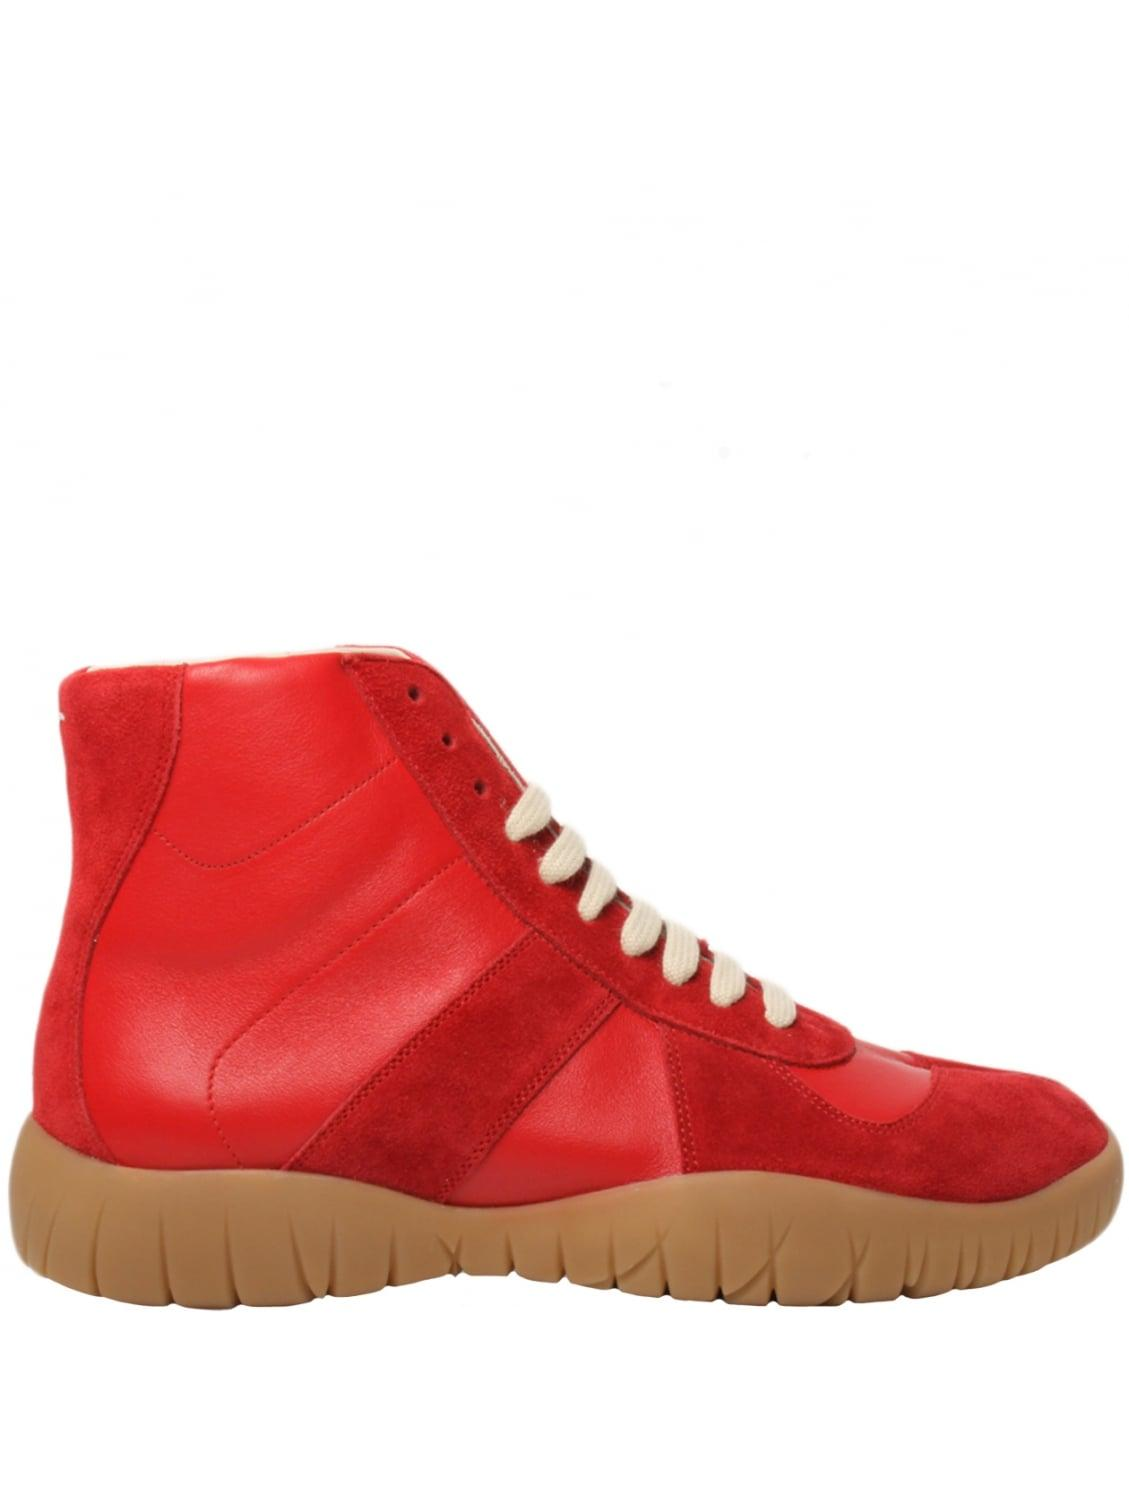 Maison margiela Tabi Replica Trainer Boots Red in Red